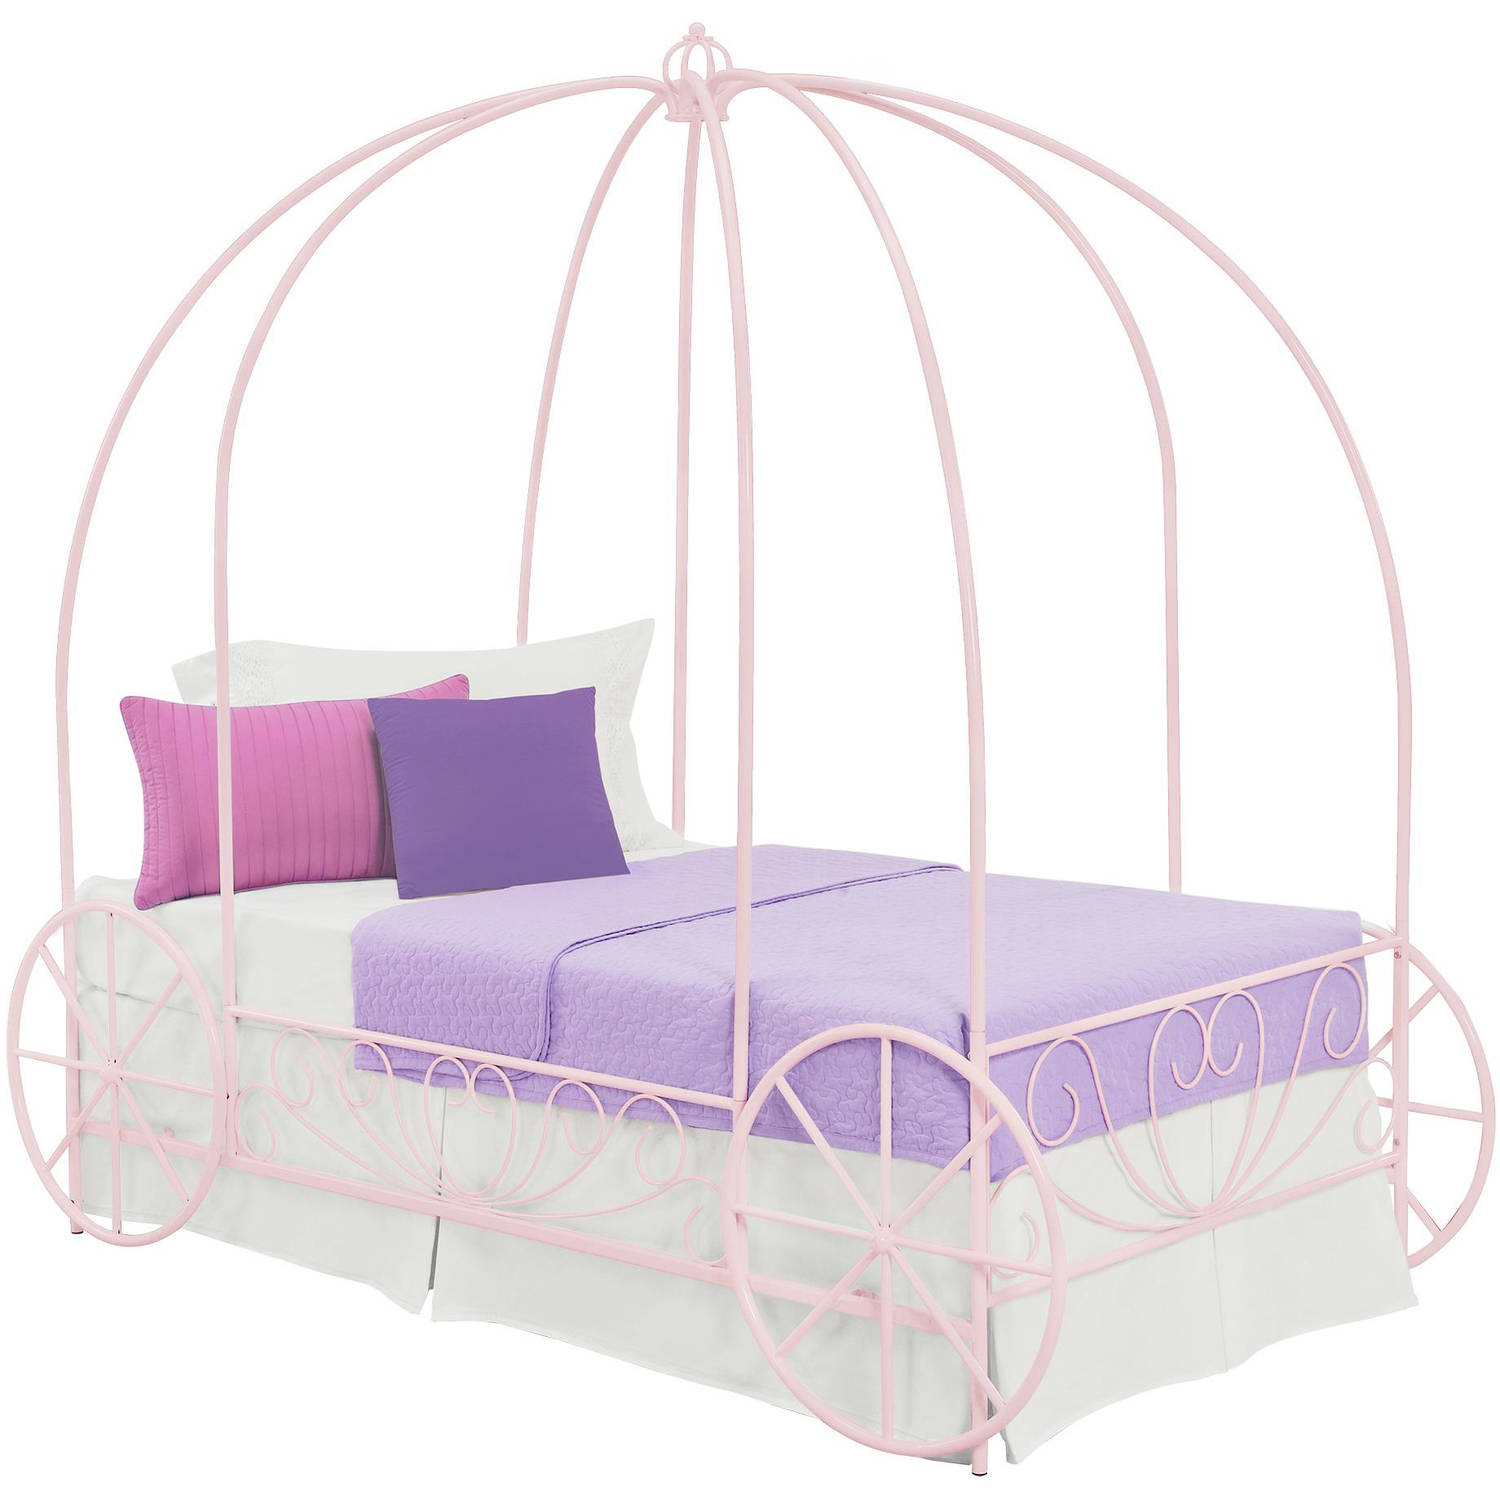 Dorel DHP Metal Twin Carriage Bed, Multiple Colors   Walmart.com